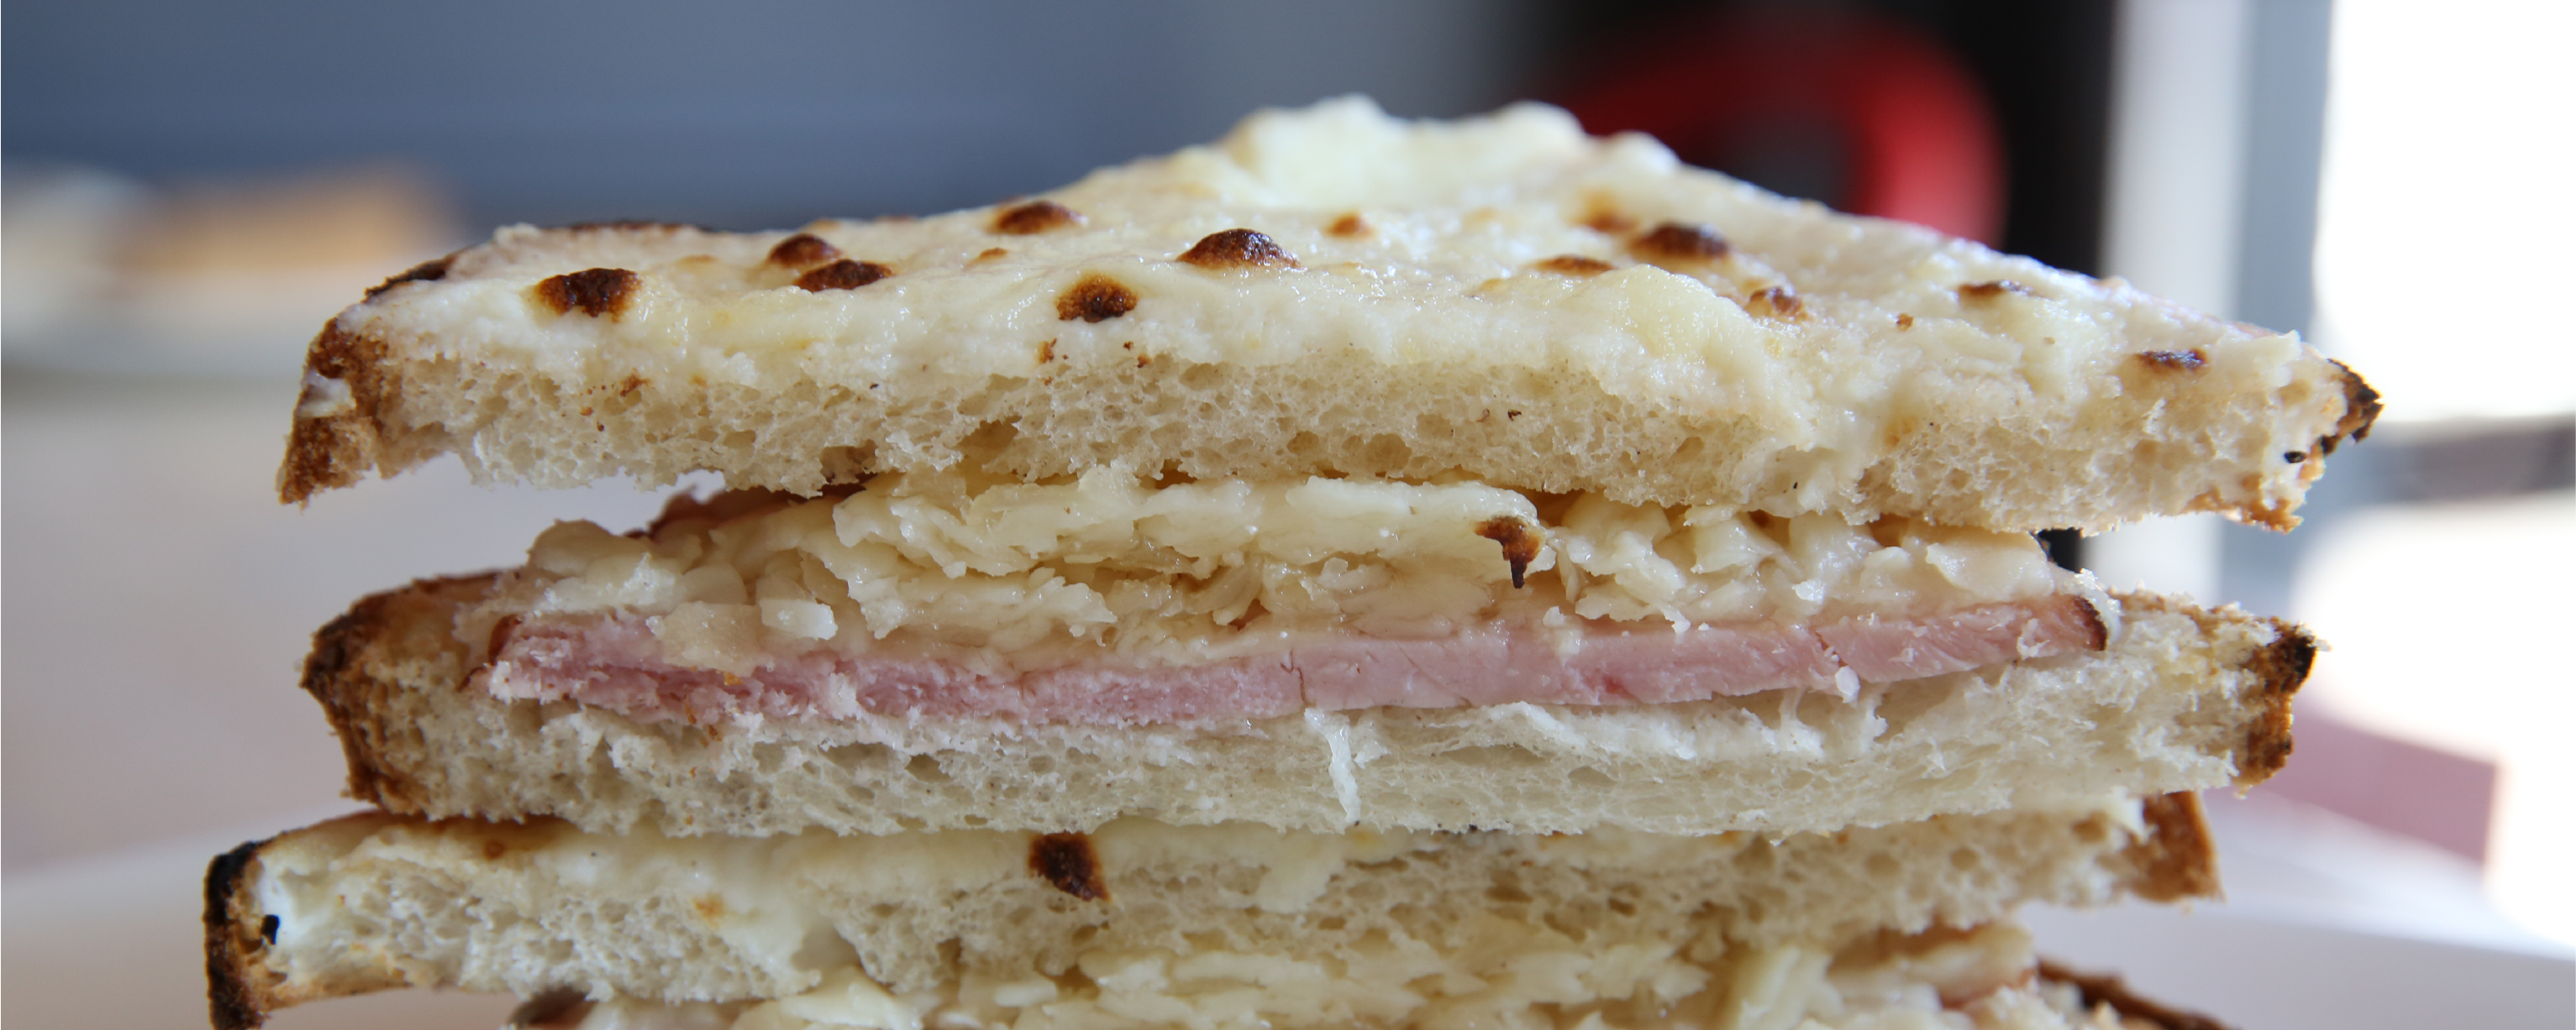 Croque Monsieur made with Comte cheese and Olympia Provisions Sweetheart Ham